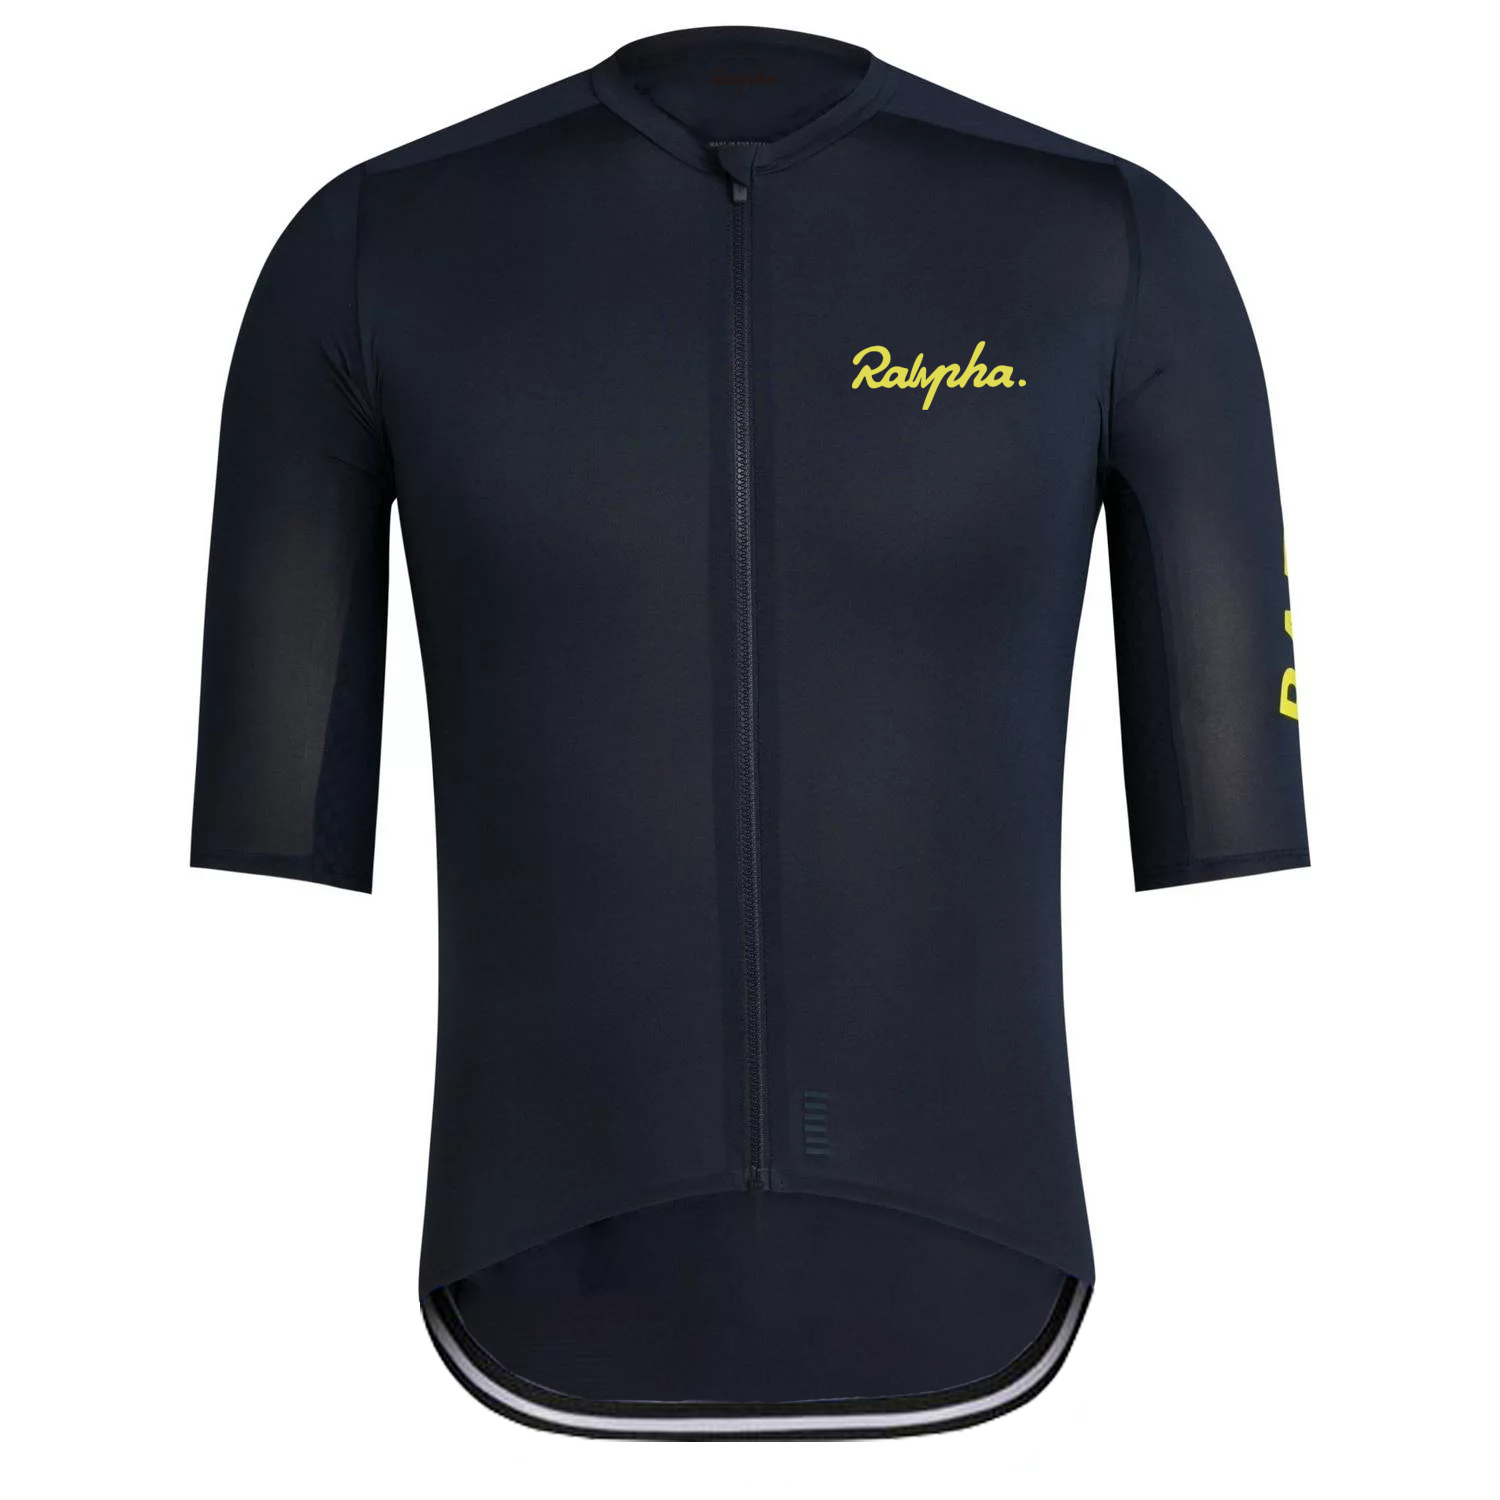 Ralvpha Cycling Jersey 2019 Pro Team Bike Jersey Short Sleeve Triathlon Summer  Downhill Jersey Men s Breathable Cycling Clothing c5af84ac4